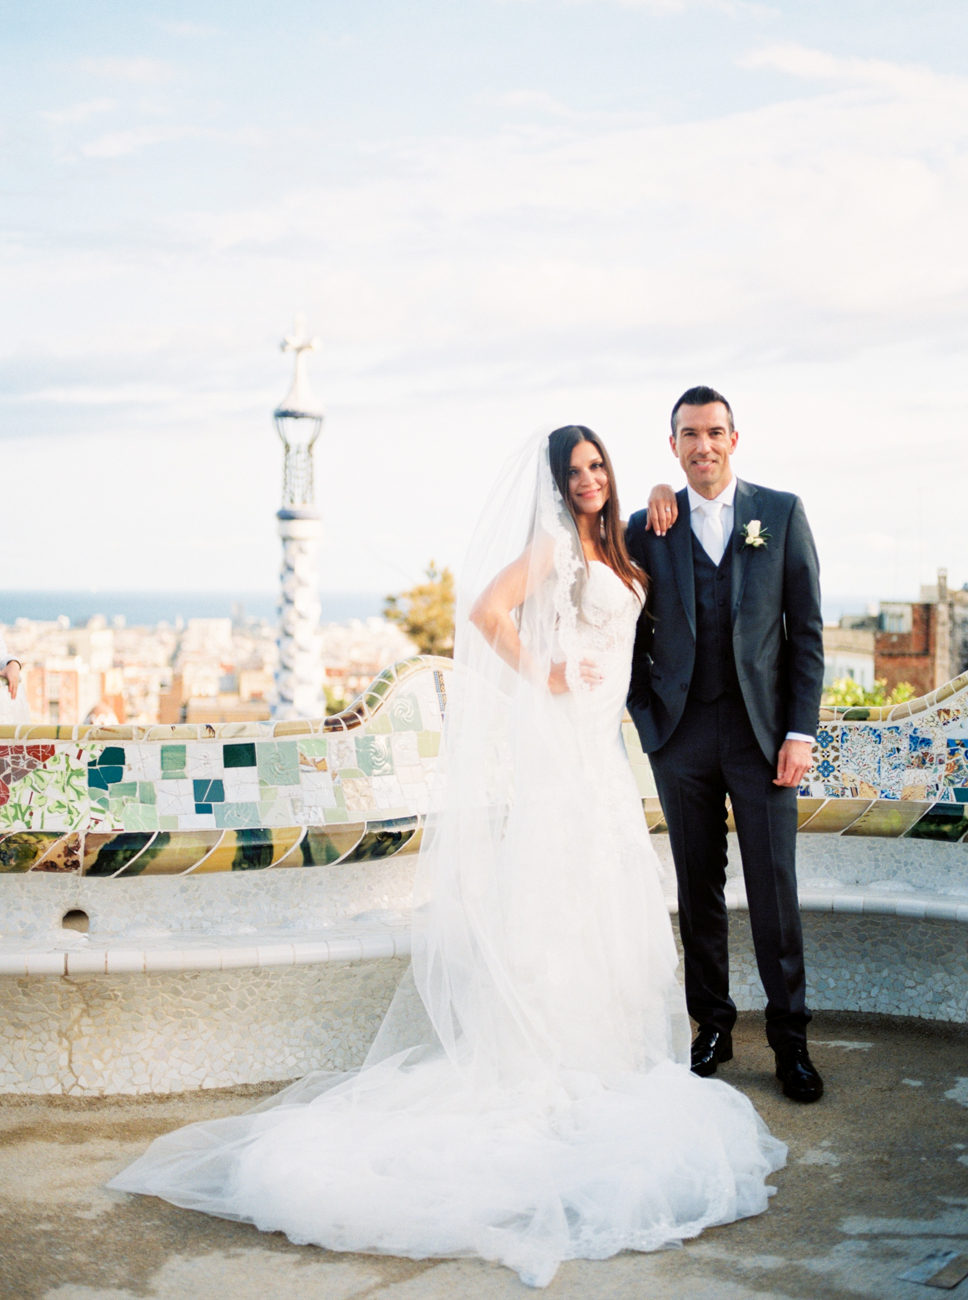 DennisRoyCoronel_chante_paul_barcelona_wedding-42.jpg